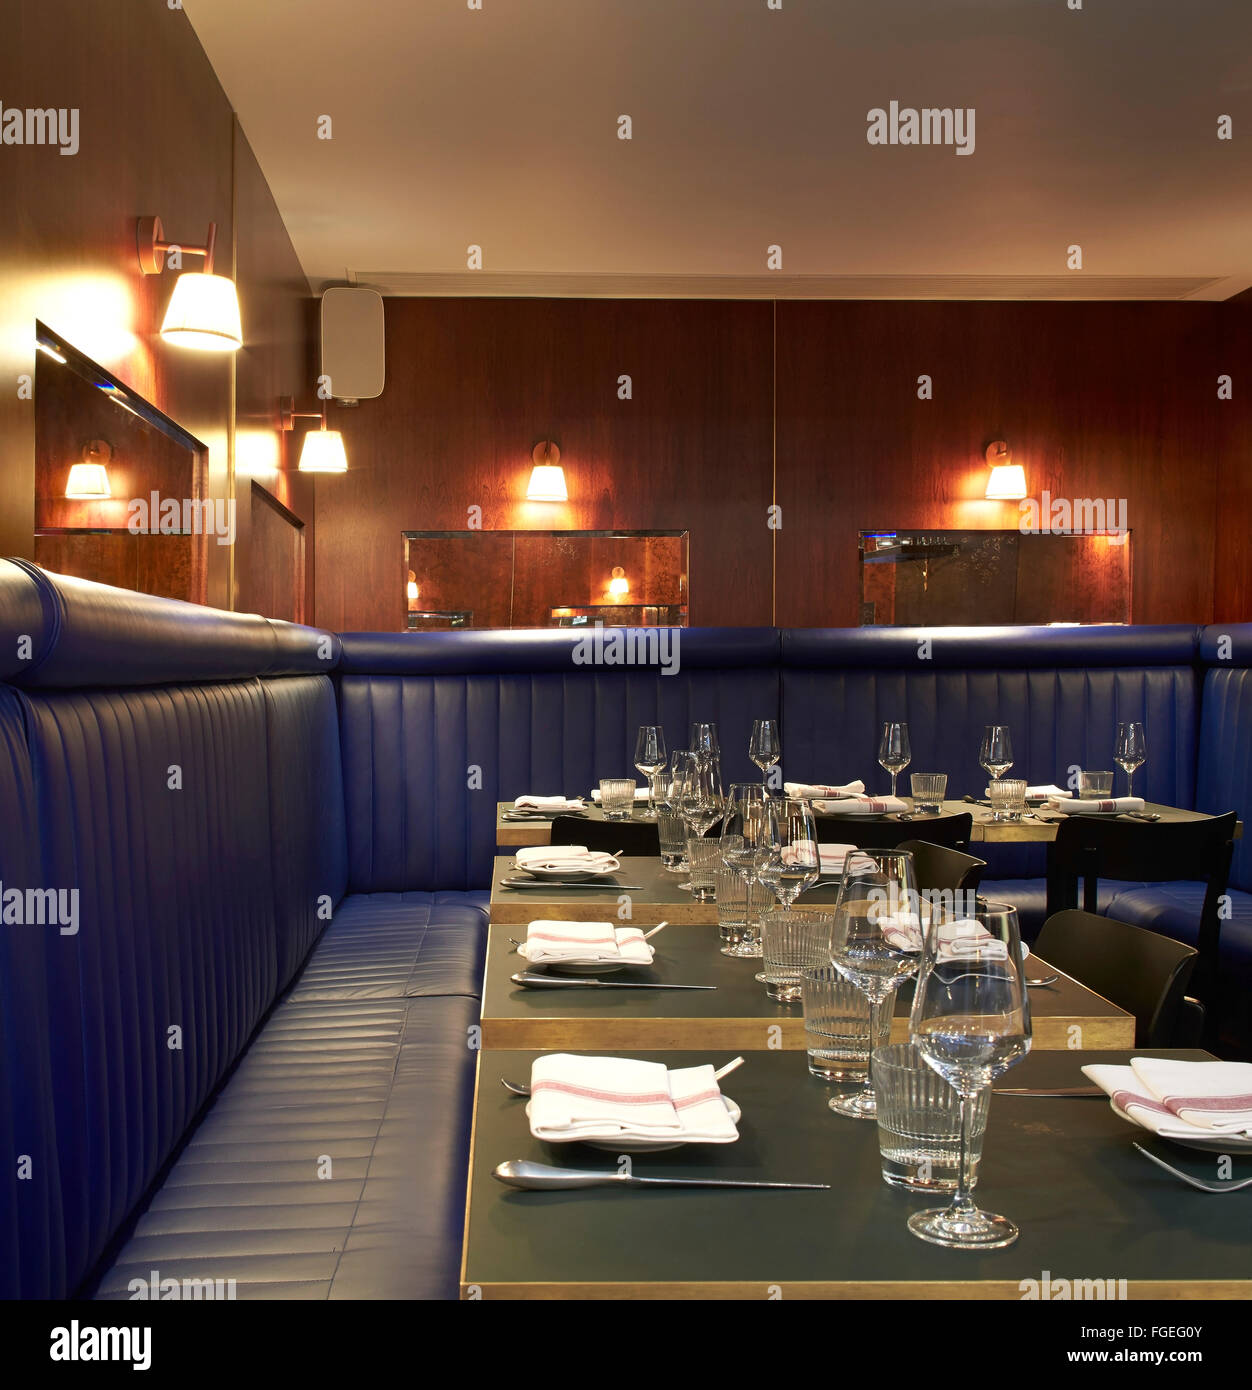 Dining Room With Upholstered Bench Seating The Palomar Restaurant London United Kingdom Architect Gundry Ducker 2014